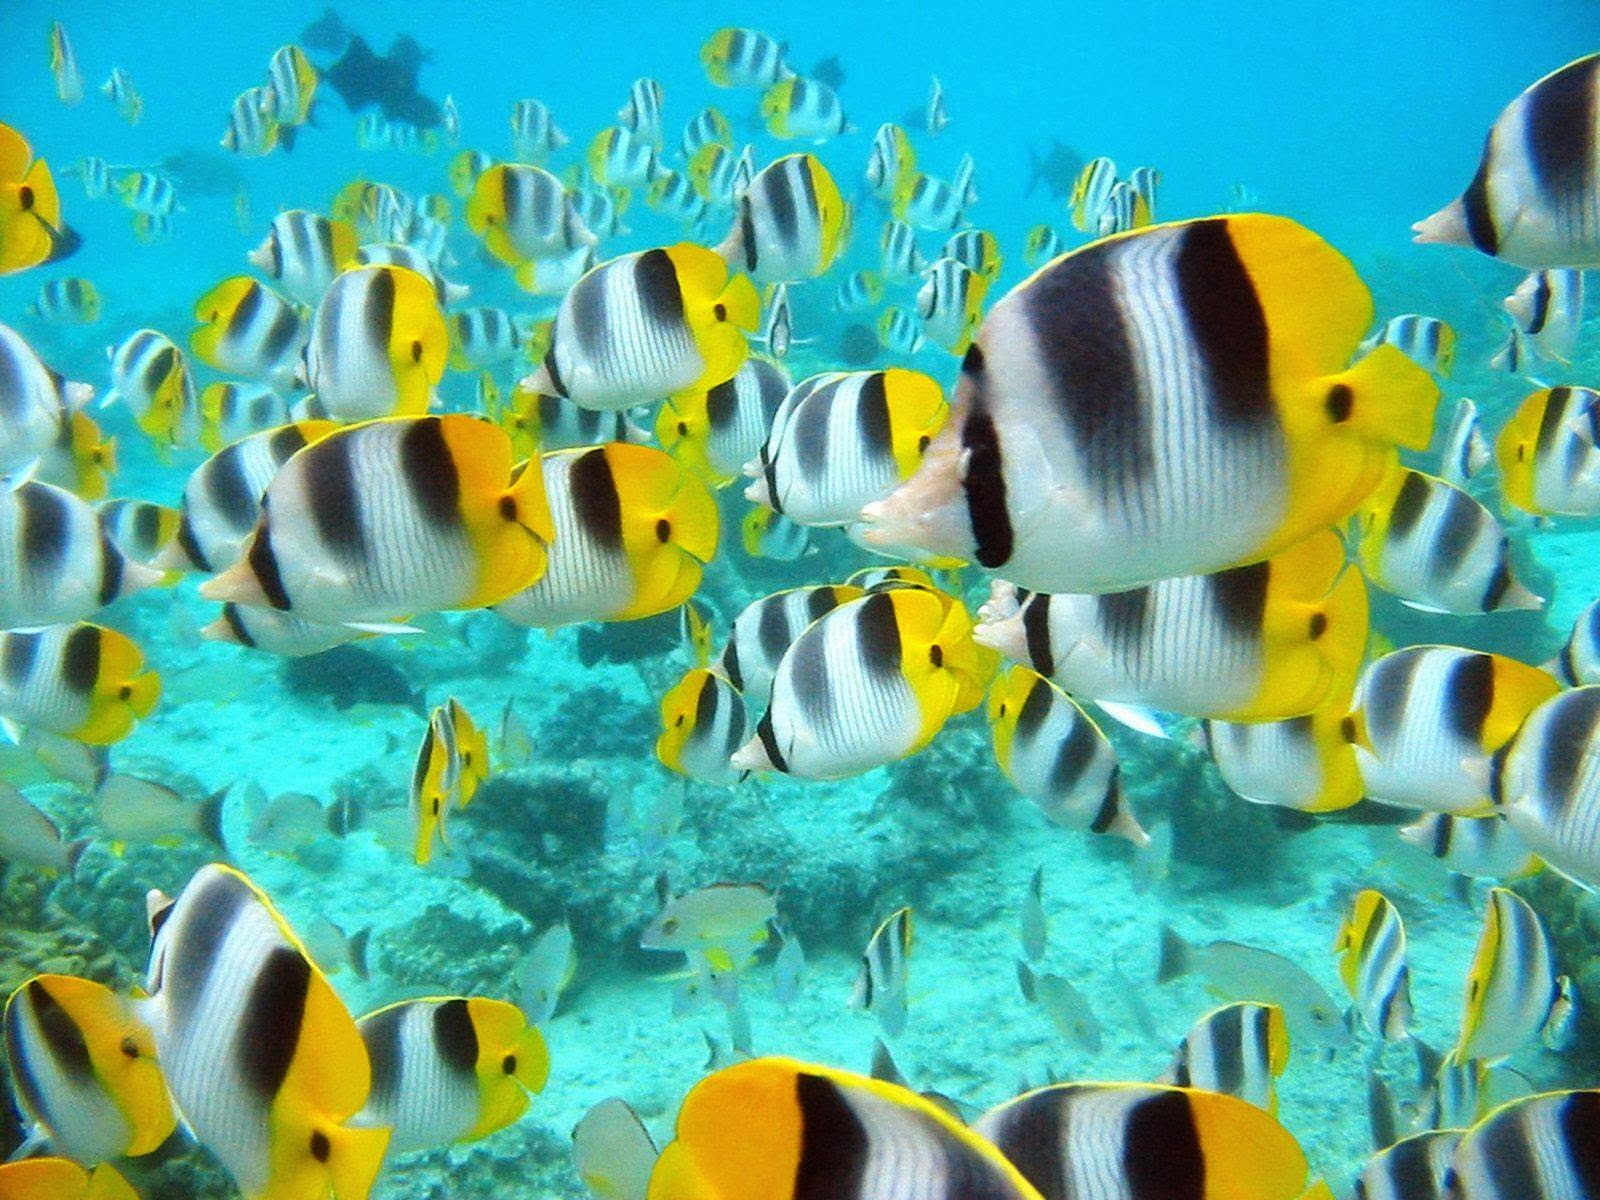 Desktop live fish wallpaper 3d hd picture design download 1600x1200